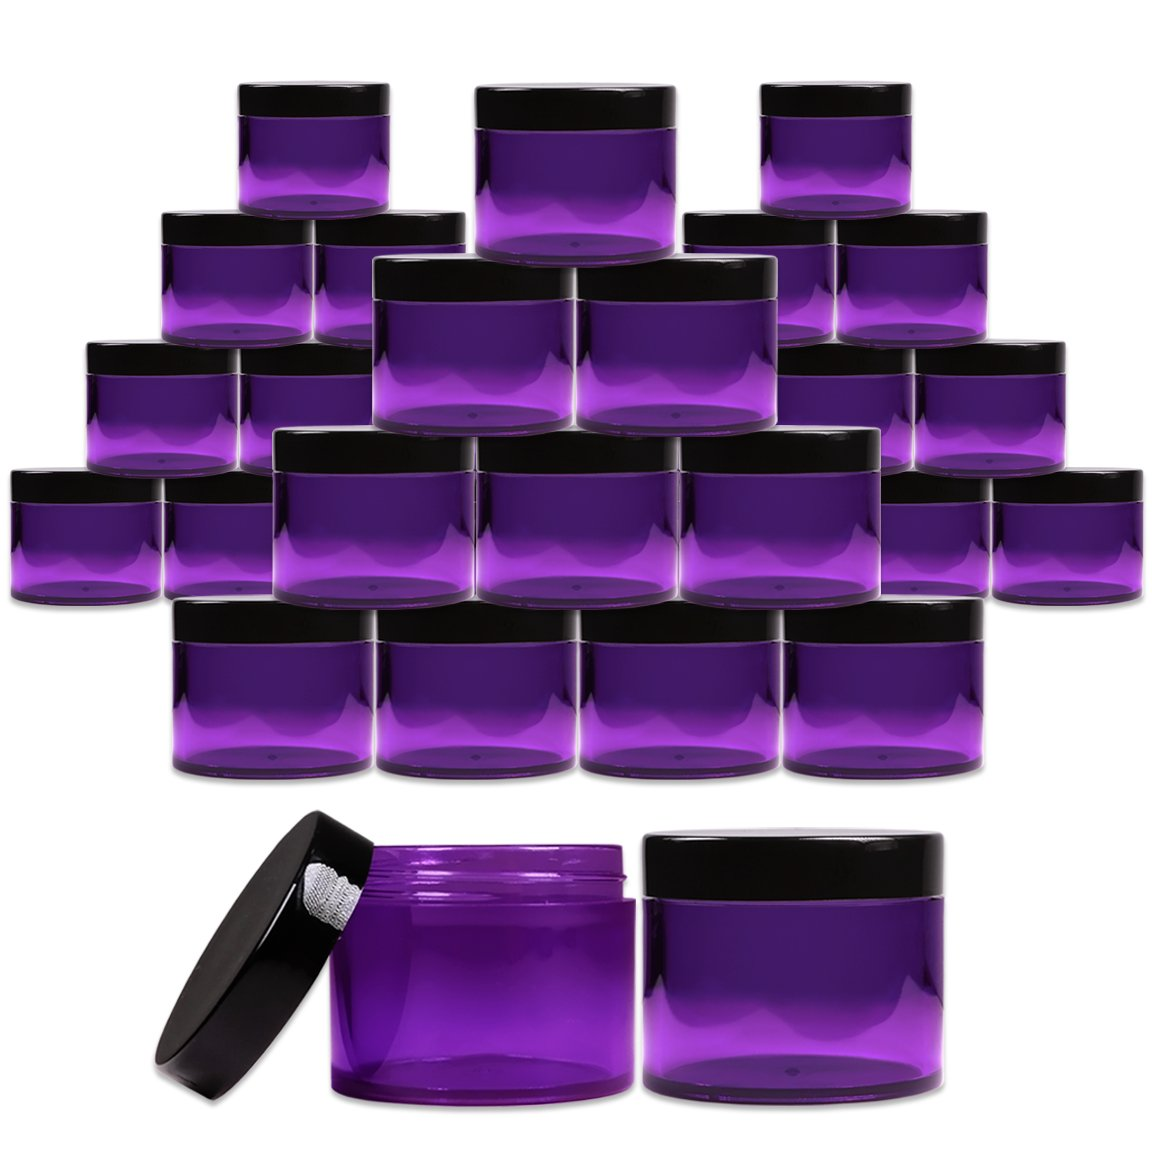 Beauticom 2 oz. (60g /60ML) (Quantity: 36 Packs) Thick Wall Round Leak Proof PURPLE CLEAR Acrylic Jars with BLACK Lids for Beauty, Cream, Cosmetics, Salves, Scrubs by Beauticom